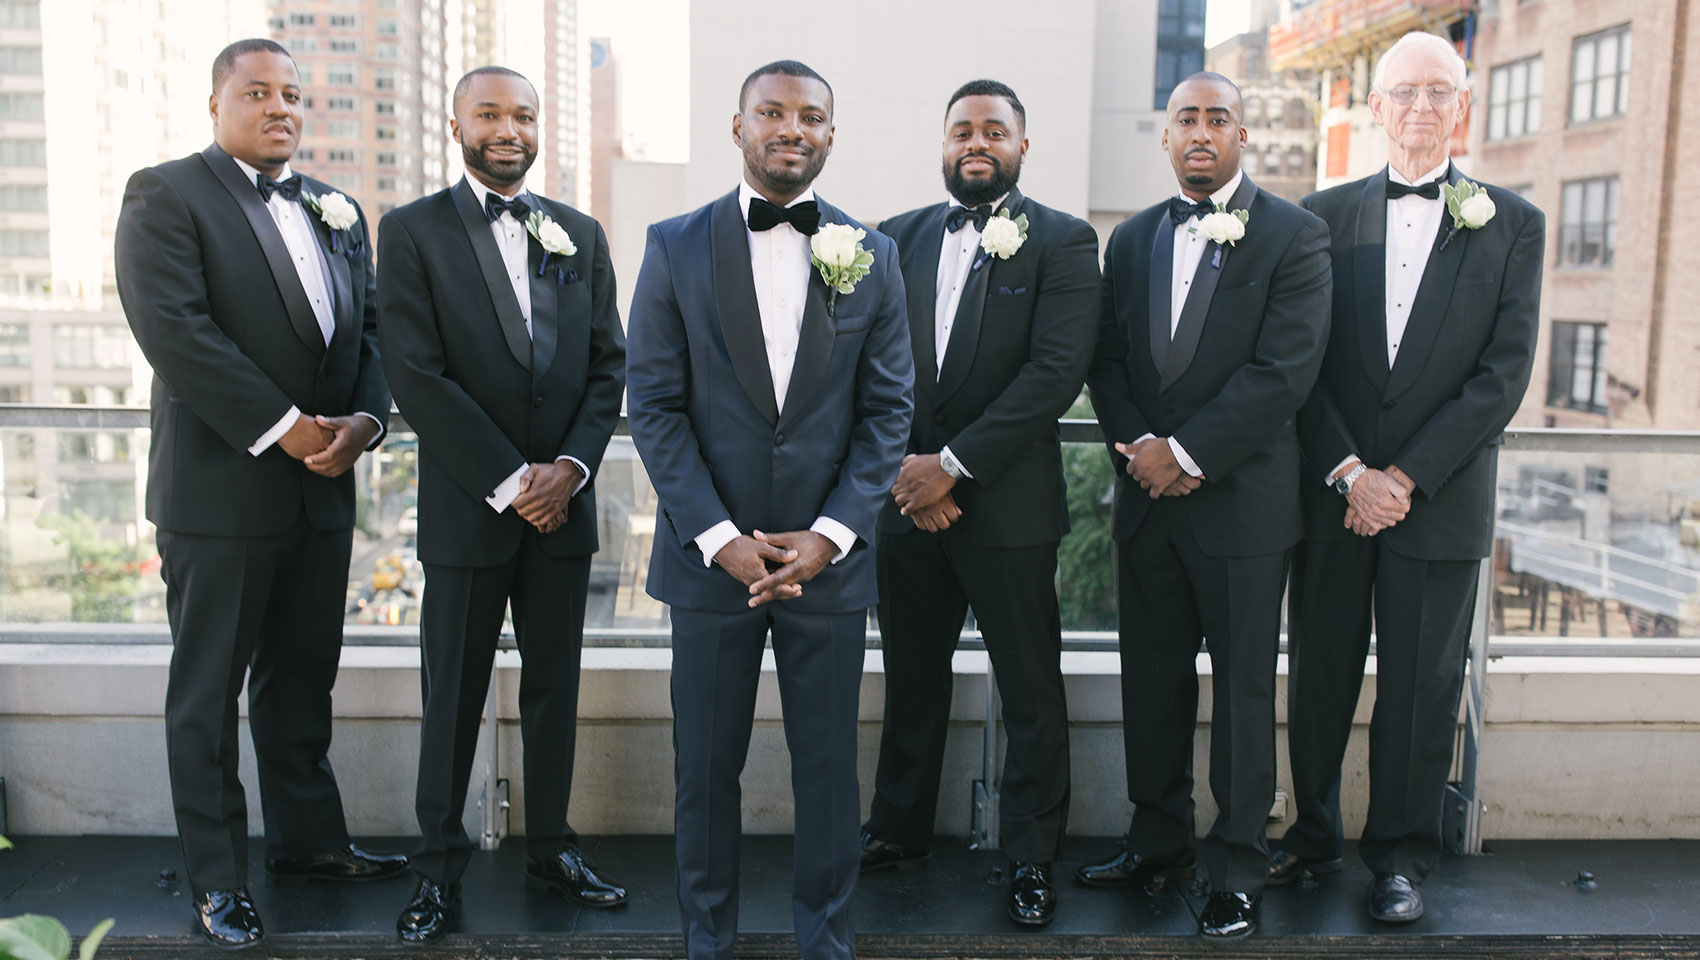 weddingsDaniel with his groomsmen in tuxedos on a balcony